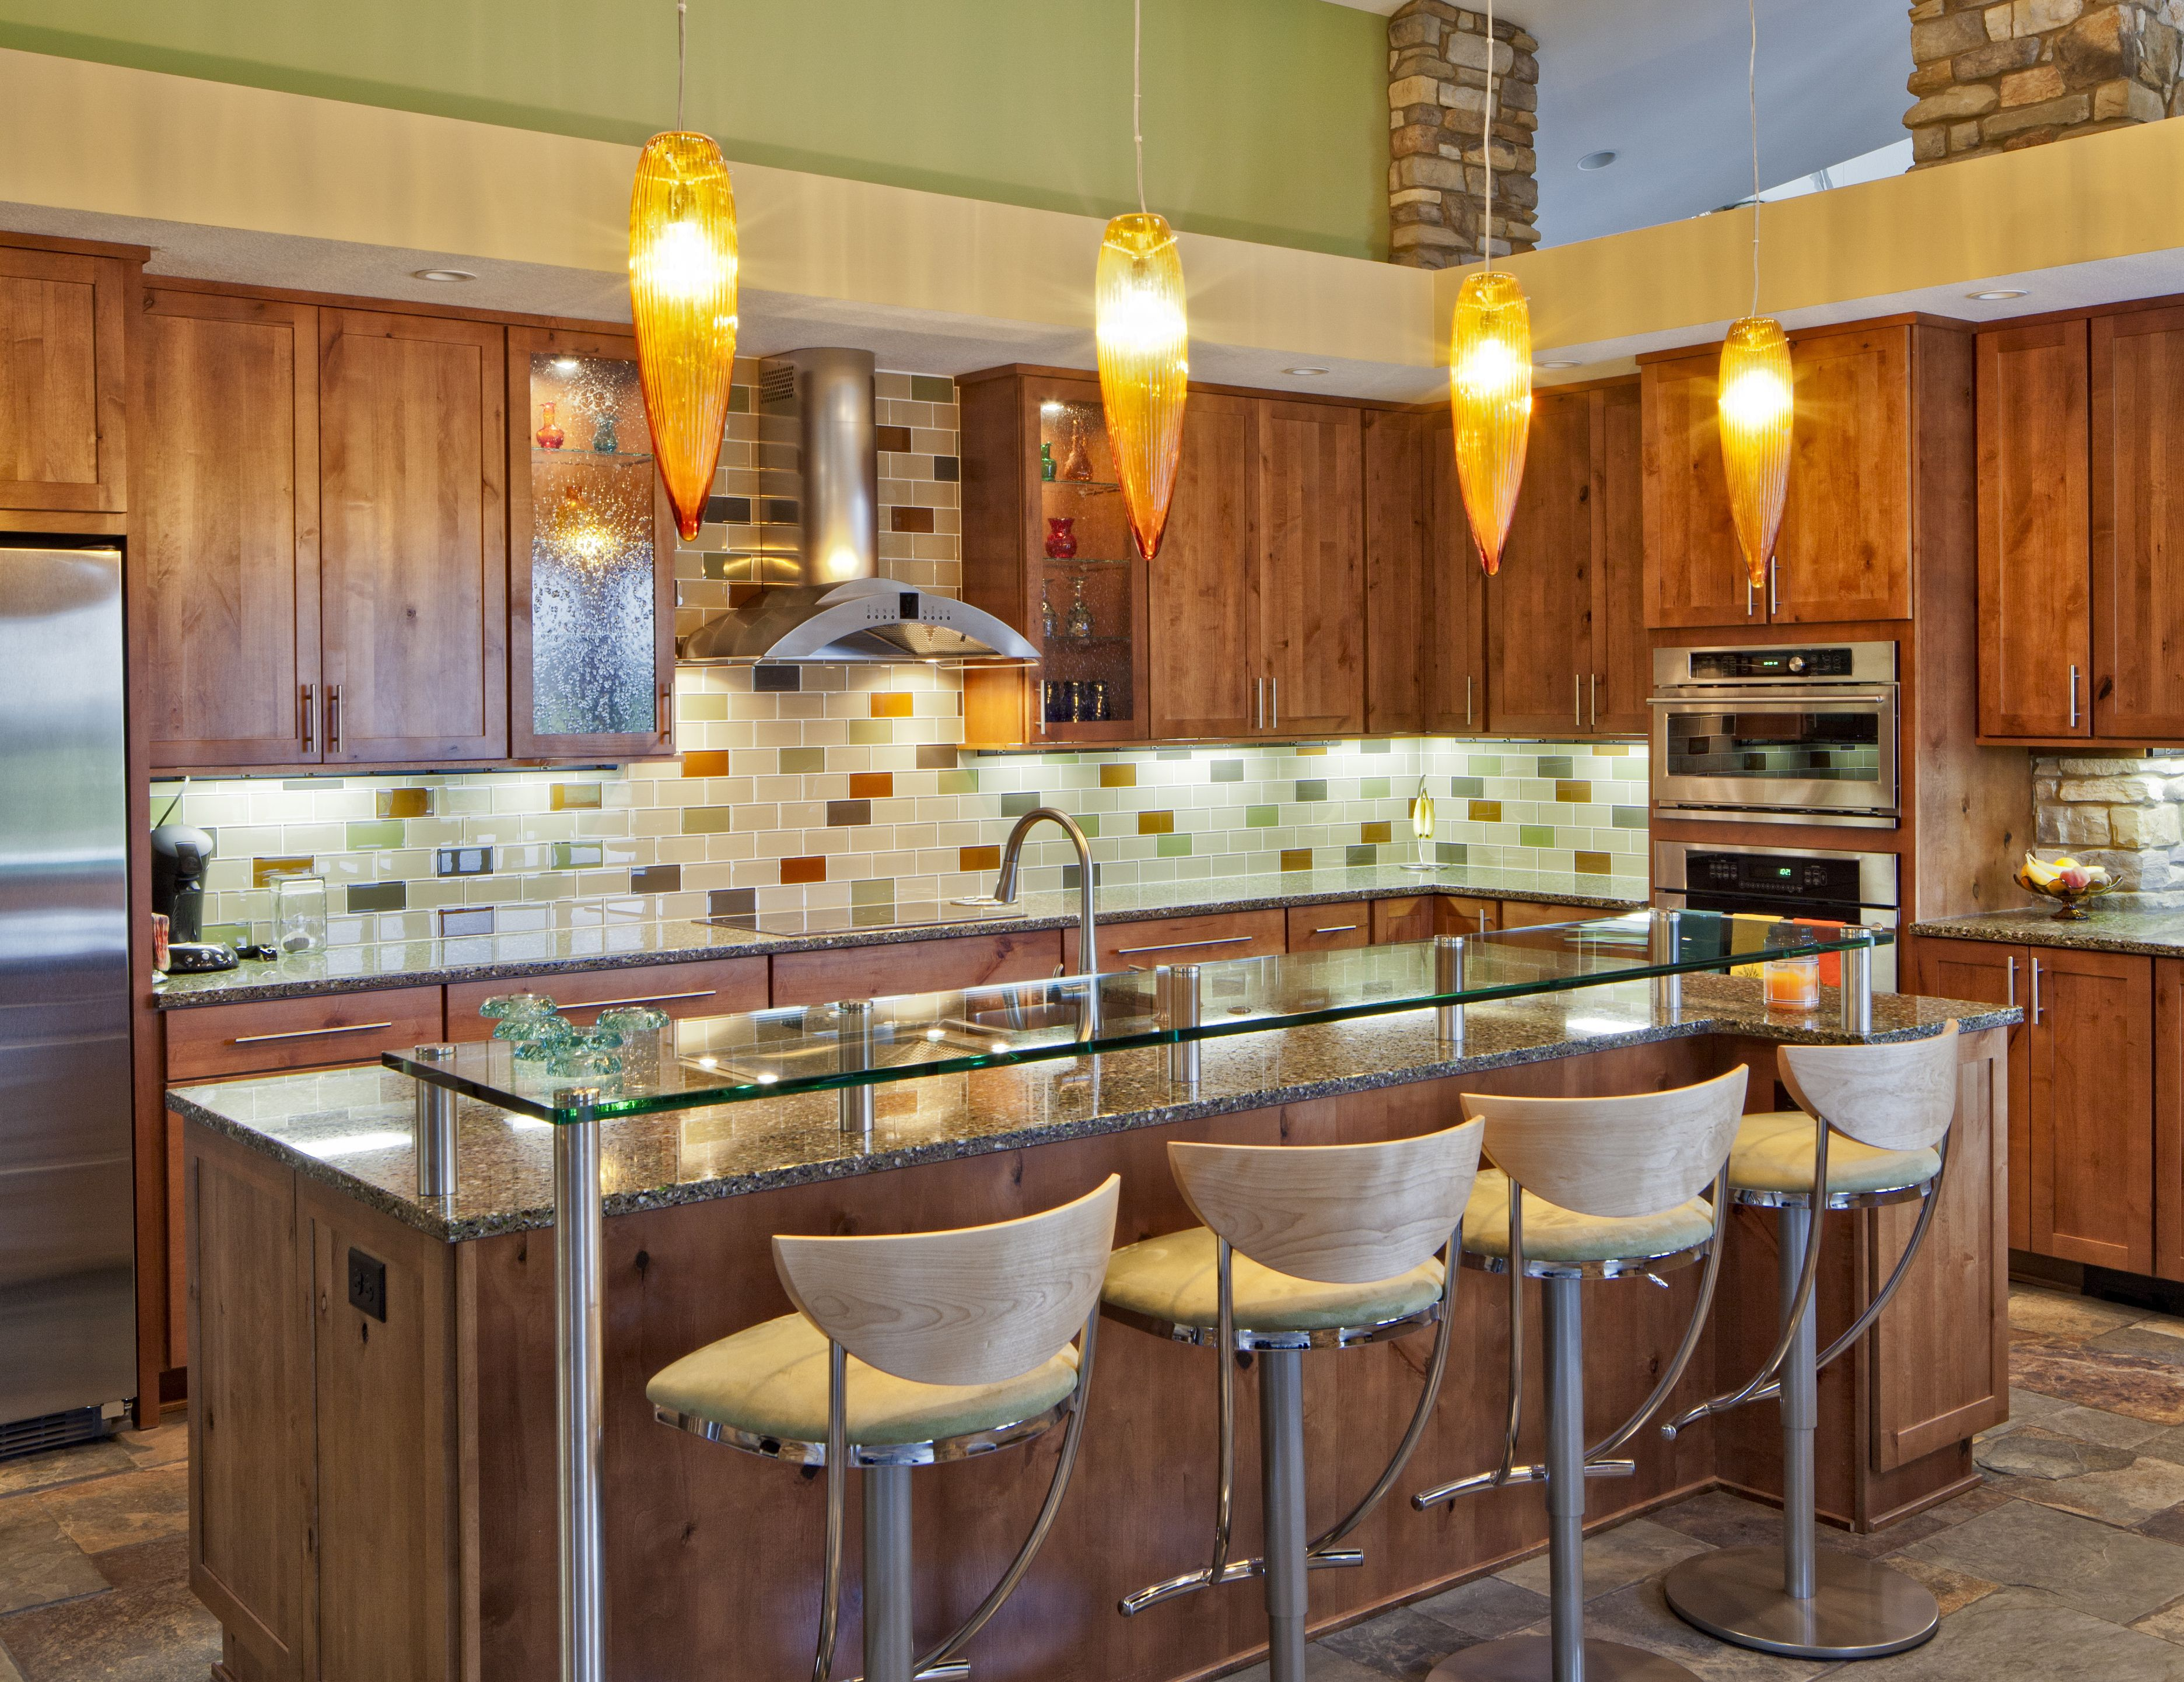 Modern Kitchen With Colorful Subway Tile 56a49fe85f9b58b7d0d7e2d7